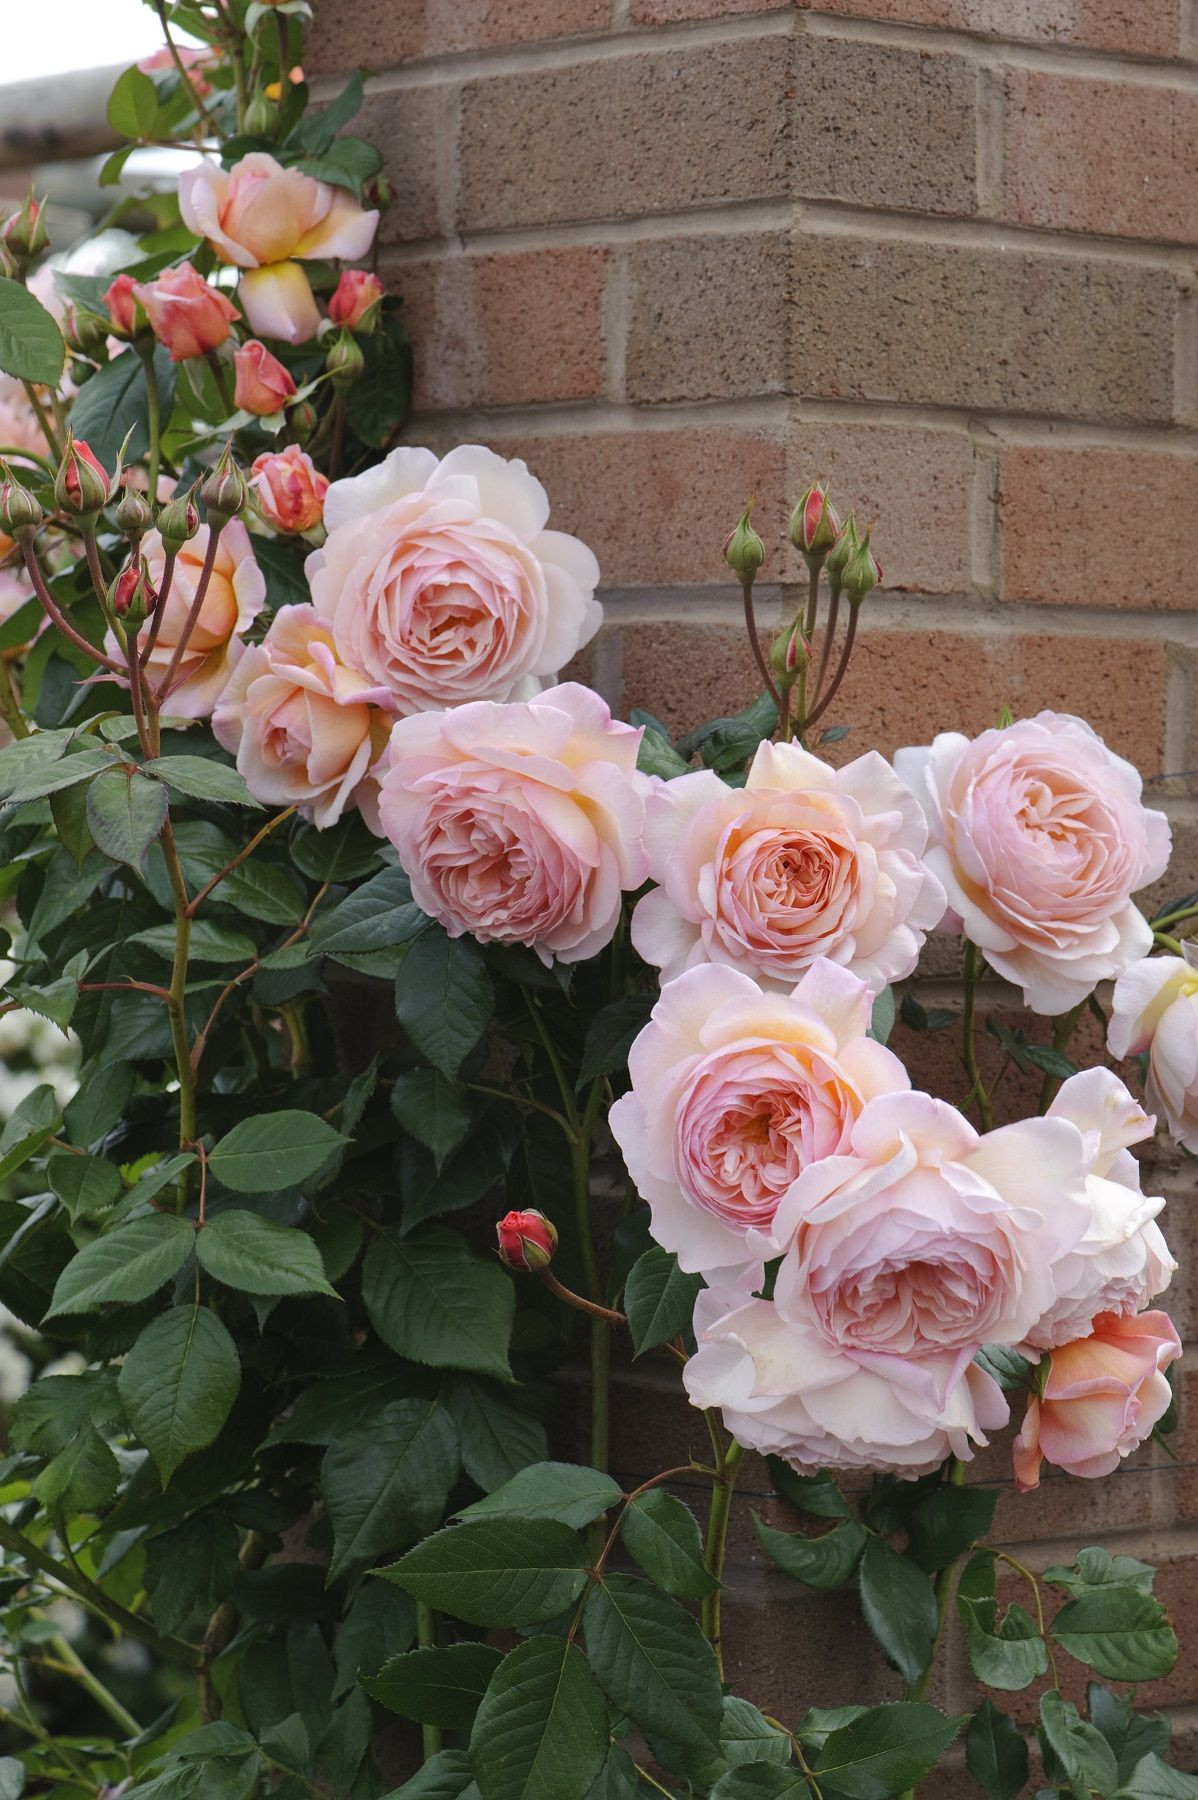 Pictures of climbing roses in front of english home.